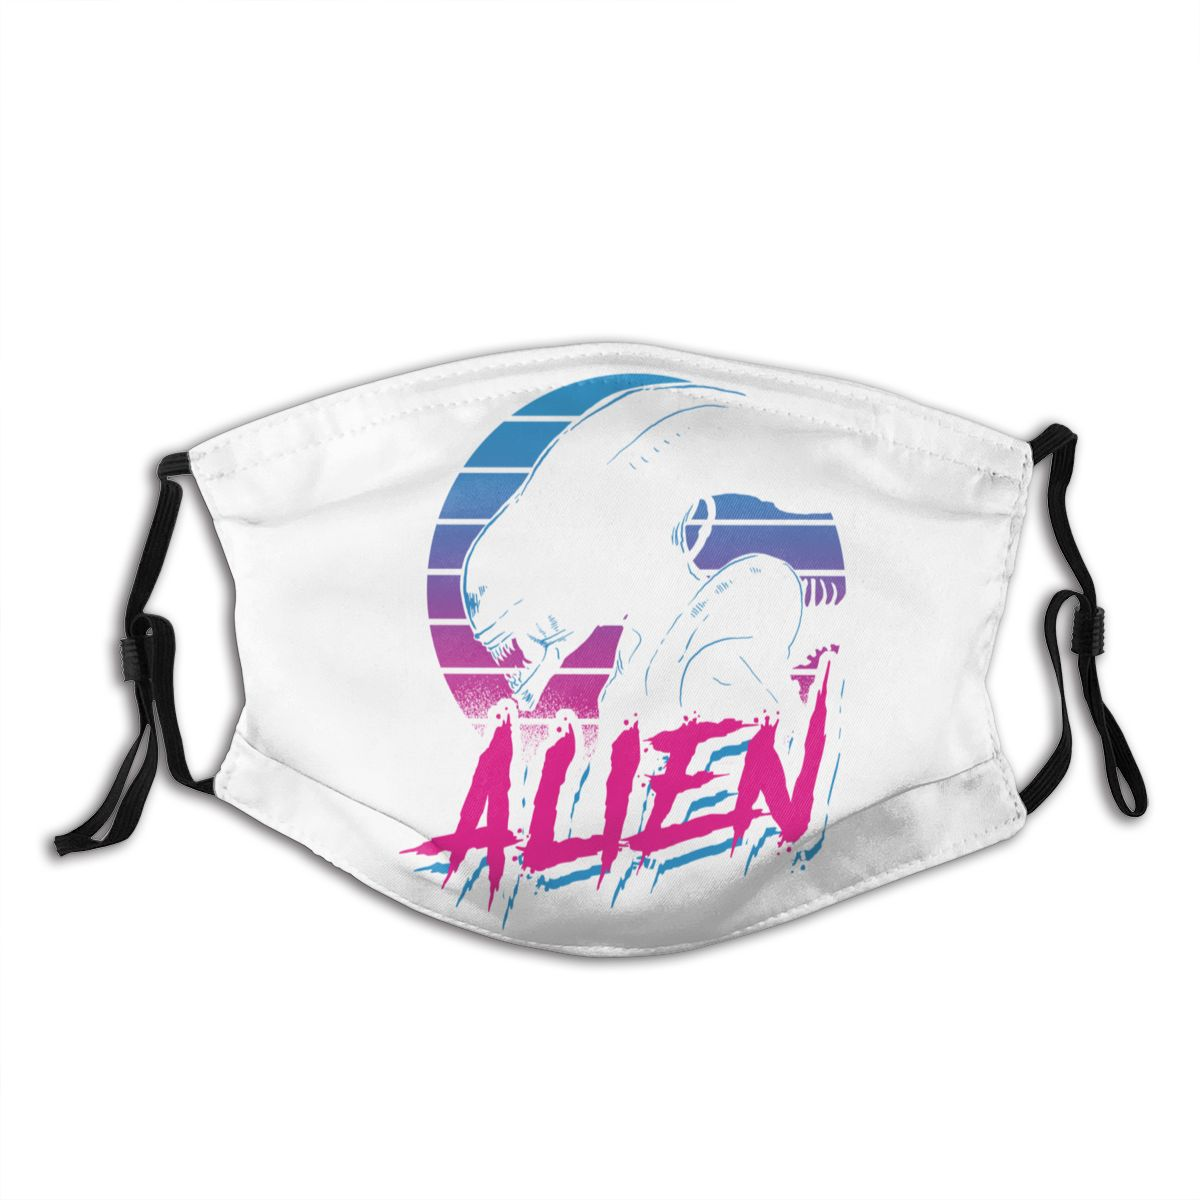 ALIEN EIGHTEES Predator Reusable Mouth Face Mask With Filter Anti Haze Dust Mask Respirator Mouth Muffle